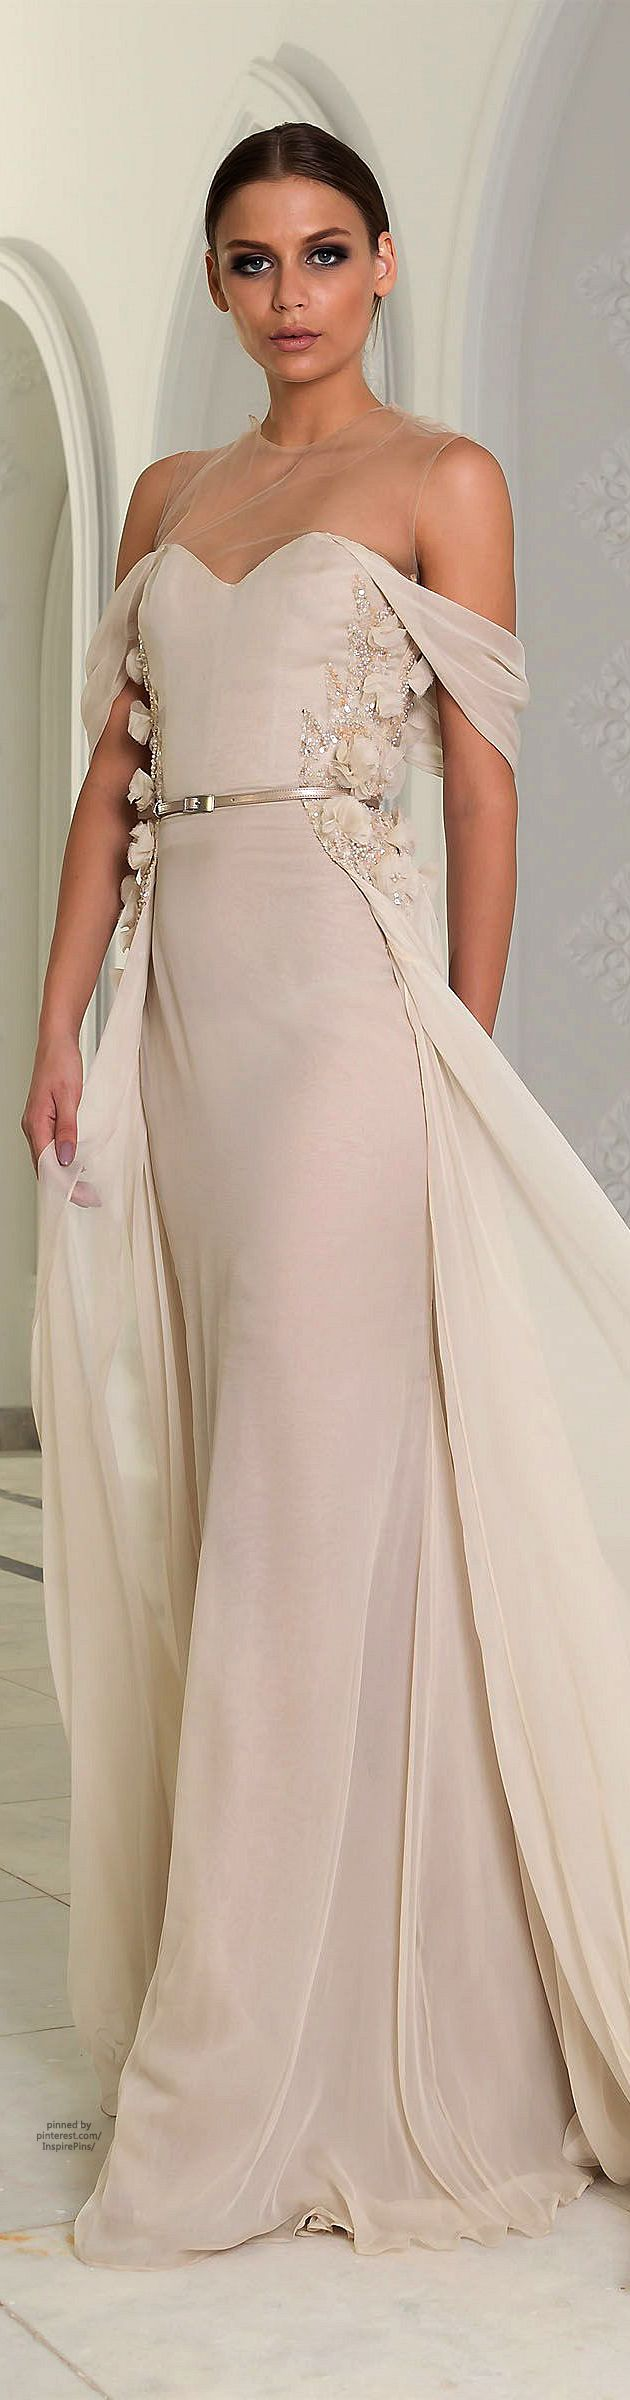 344 best Grey images on Pinterest   Long dresses, Couture and ...